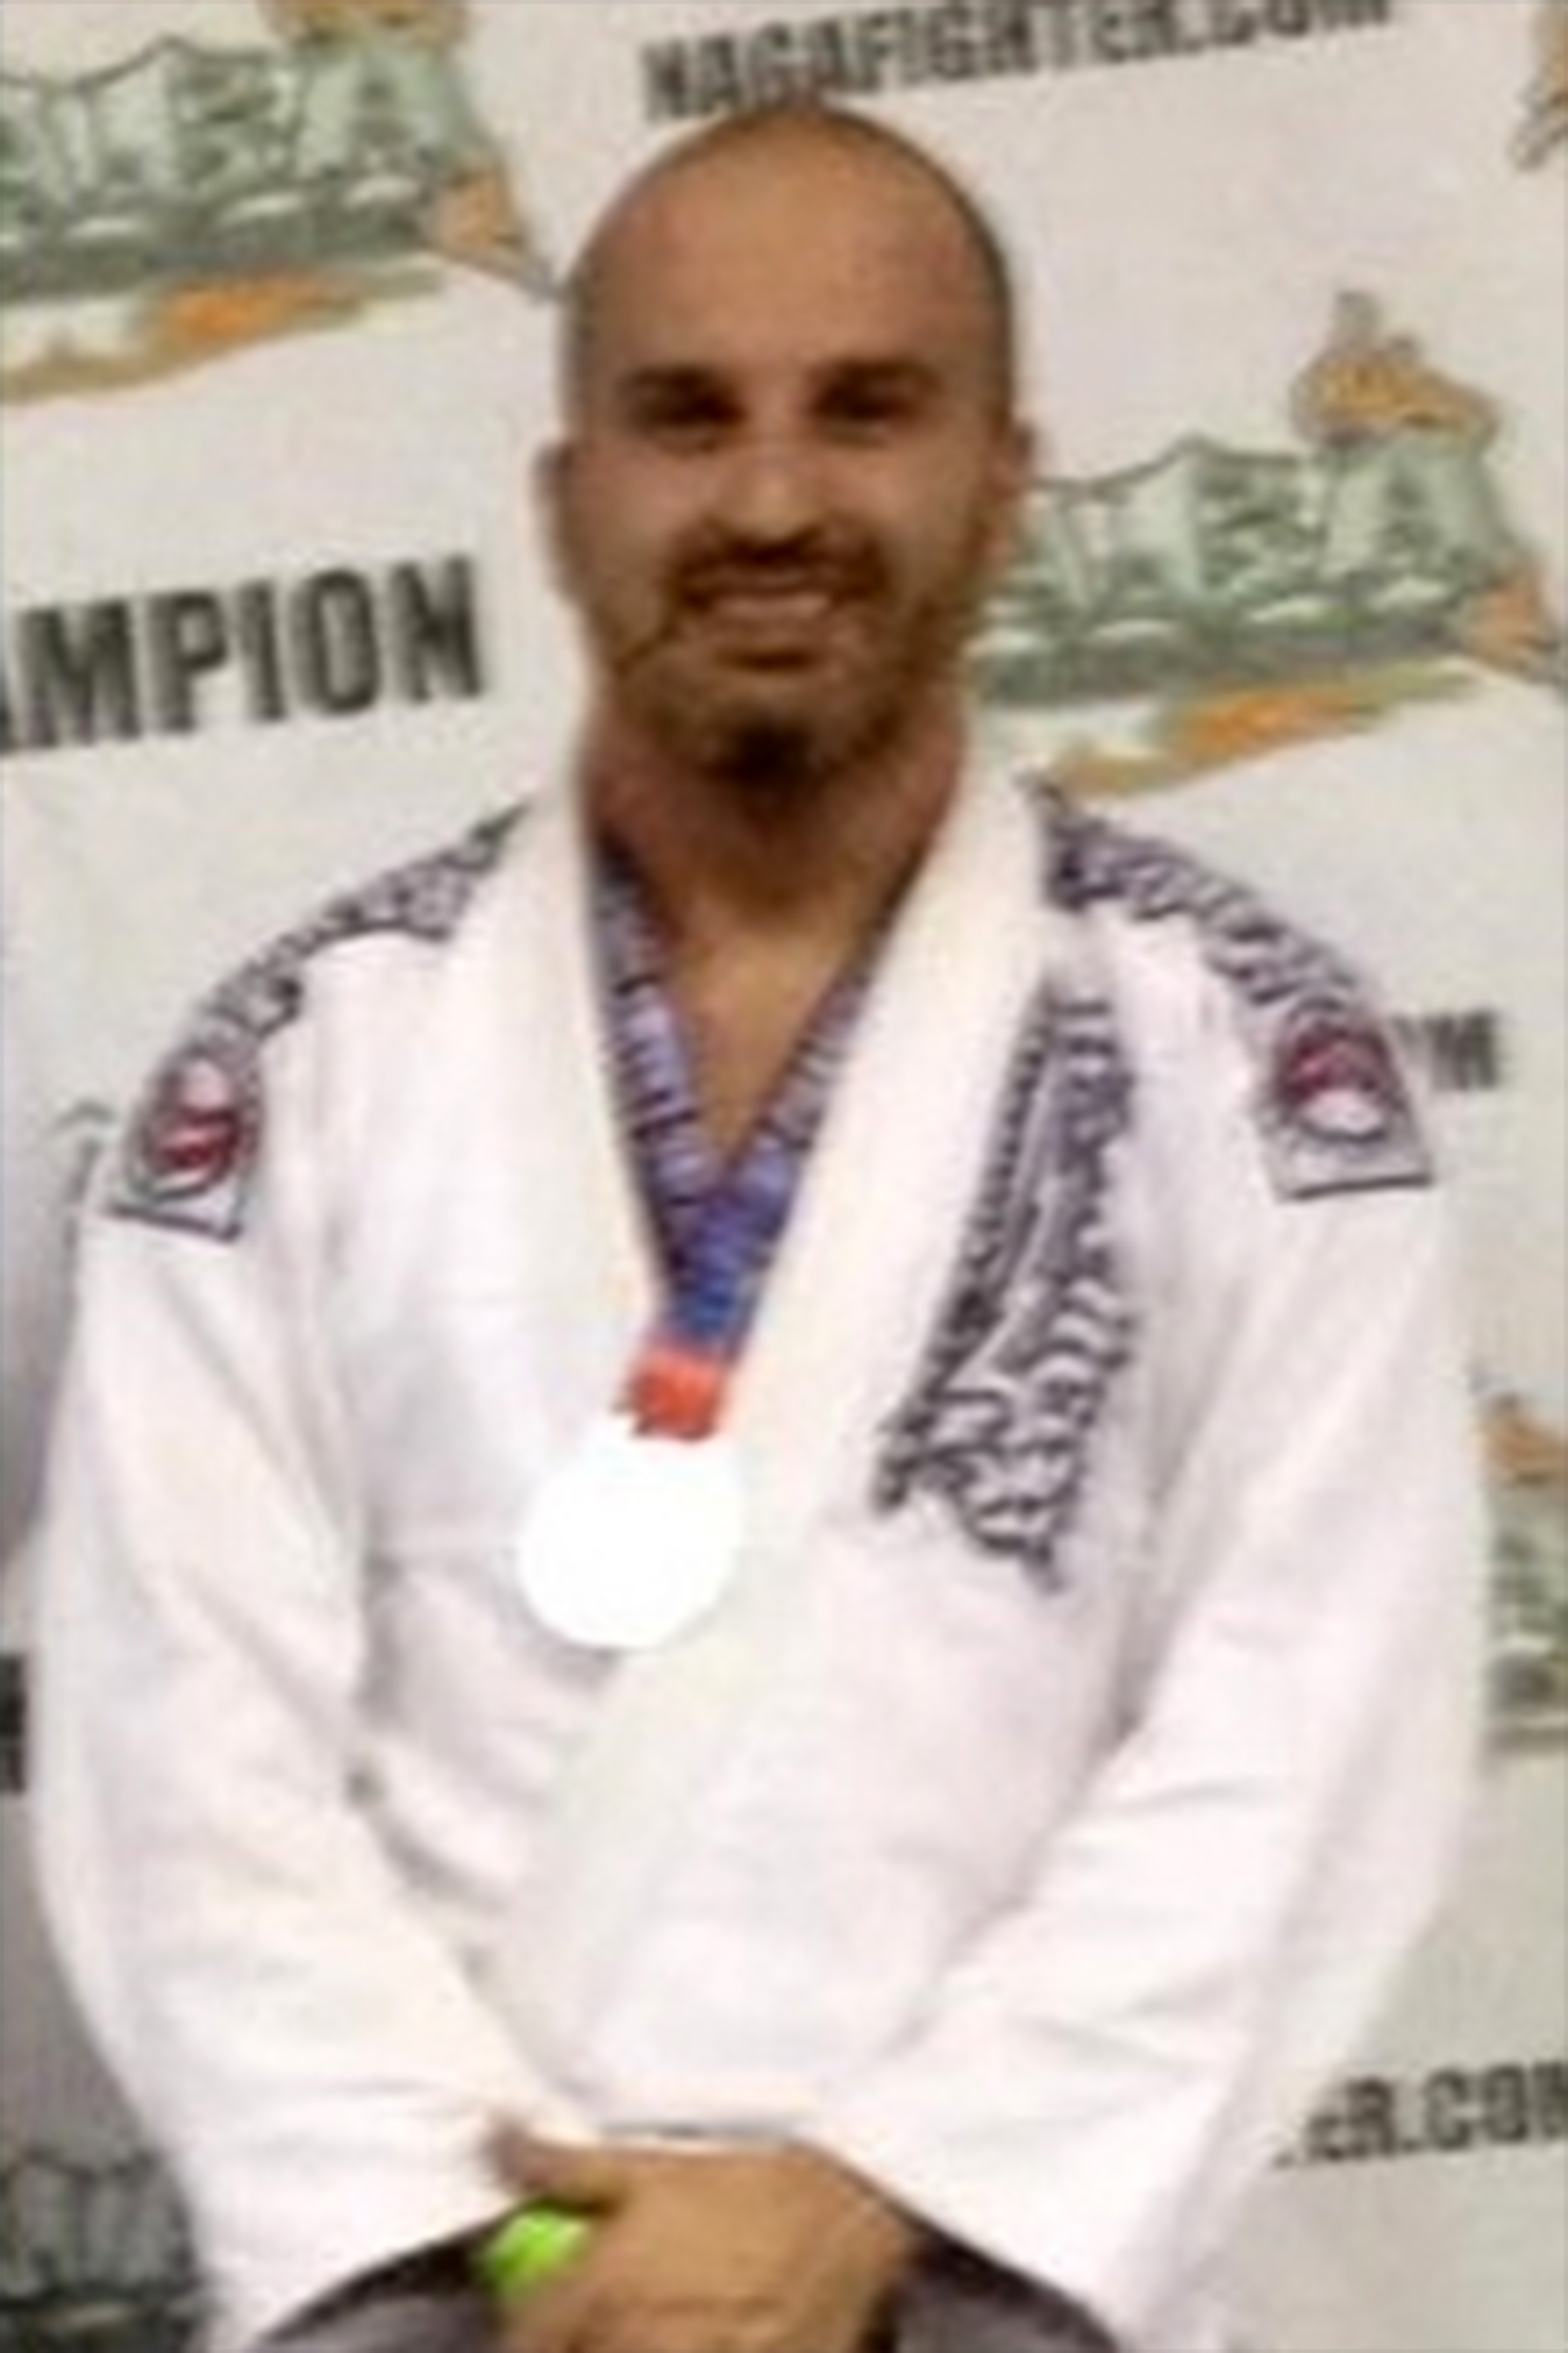 Jason Drury (In Memorium) - InstructorJason is a Gracie Jiu-Jitsu Blue Belt under Black Belt Mike Braswell and has been training Gracie Jiu-Jitsu since 2012. He was awarded his blue belt by 3rd degree black belt Allen Hopkins in Jan 2015. Jason is also a brown belt in Kajukenbo under 3rd Degree Black Belt William Ross. He competed at NAGA and won silver in his division. Jason has attended seminars by Kron Gracie (2), Matt Strack (2), Allen Hopkins (many), and Pedro Sauer. His goal is to compete in at least one grappling tournament every year.